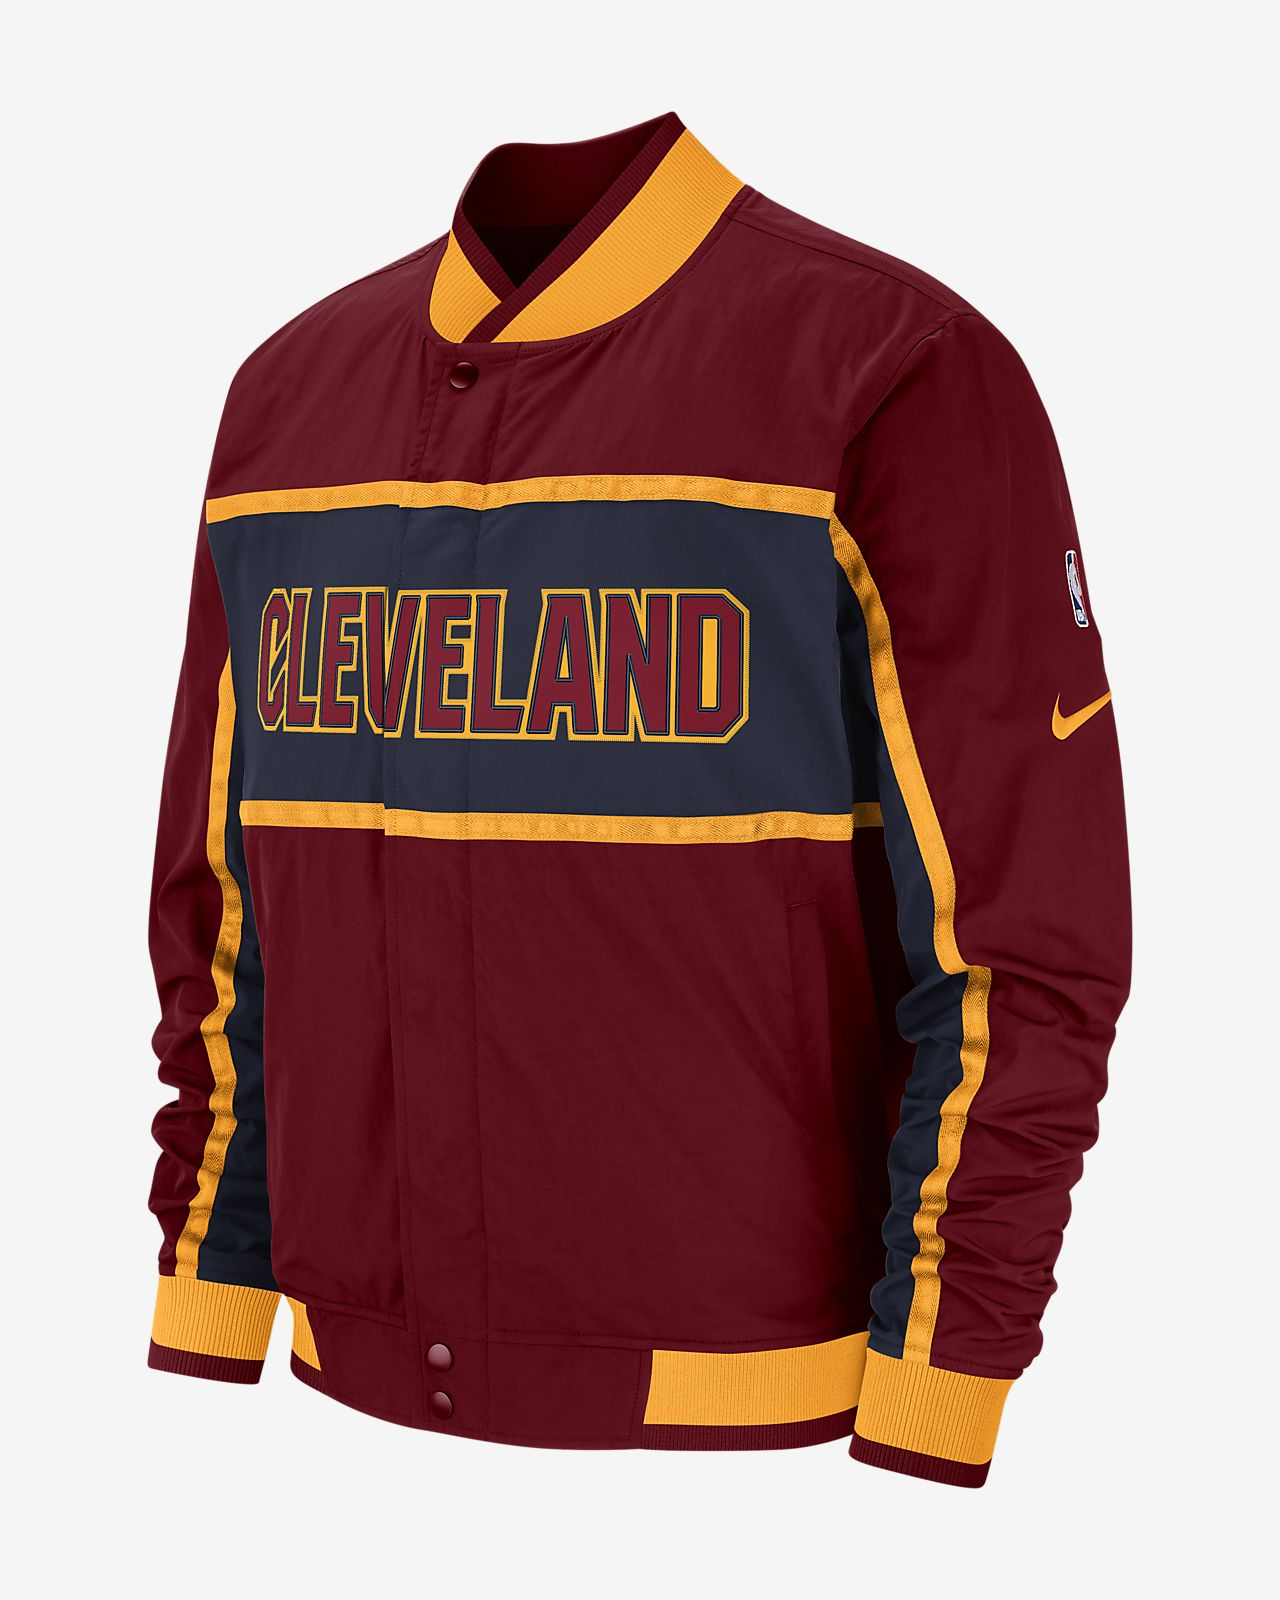 Cleveland Cavaliers Nike Courtside Men's NBA Jacket